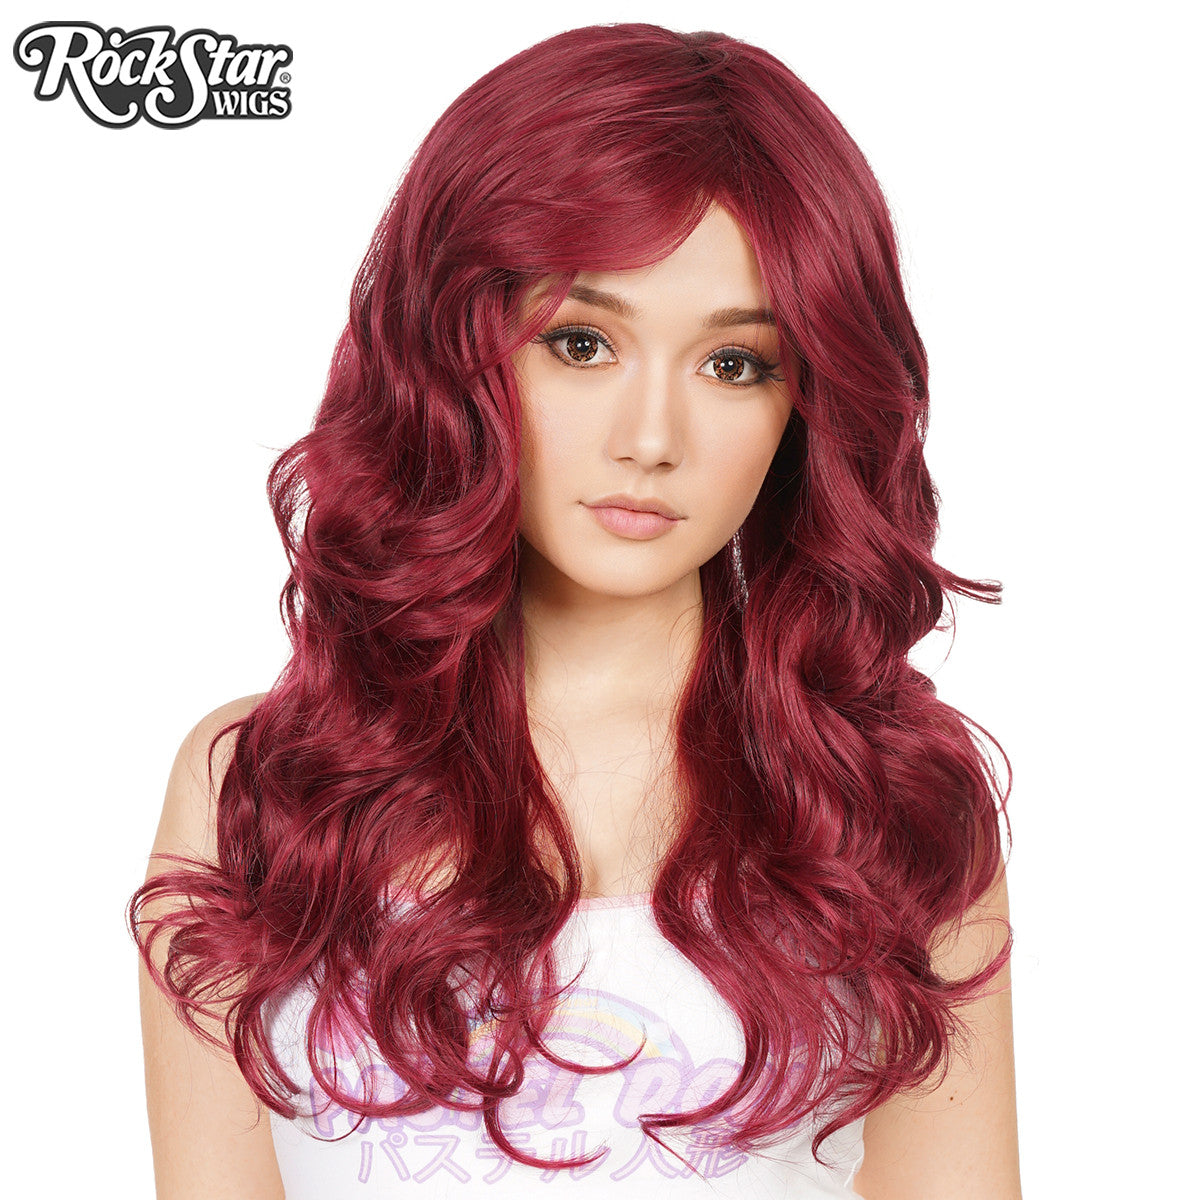 New Gothic Tempress Wig Red//Auburn curly Wig